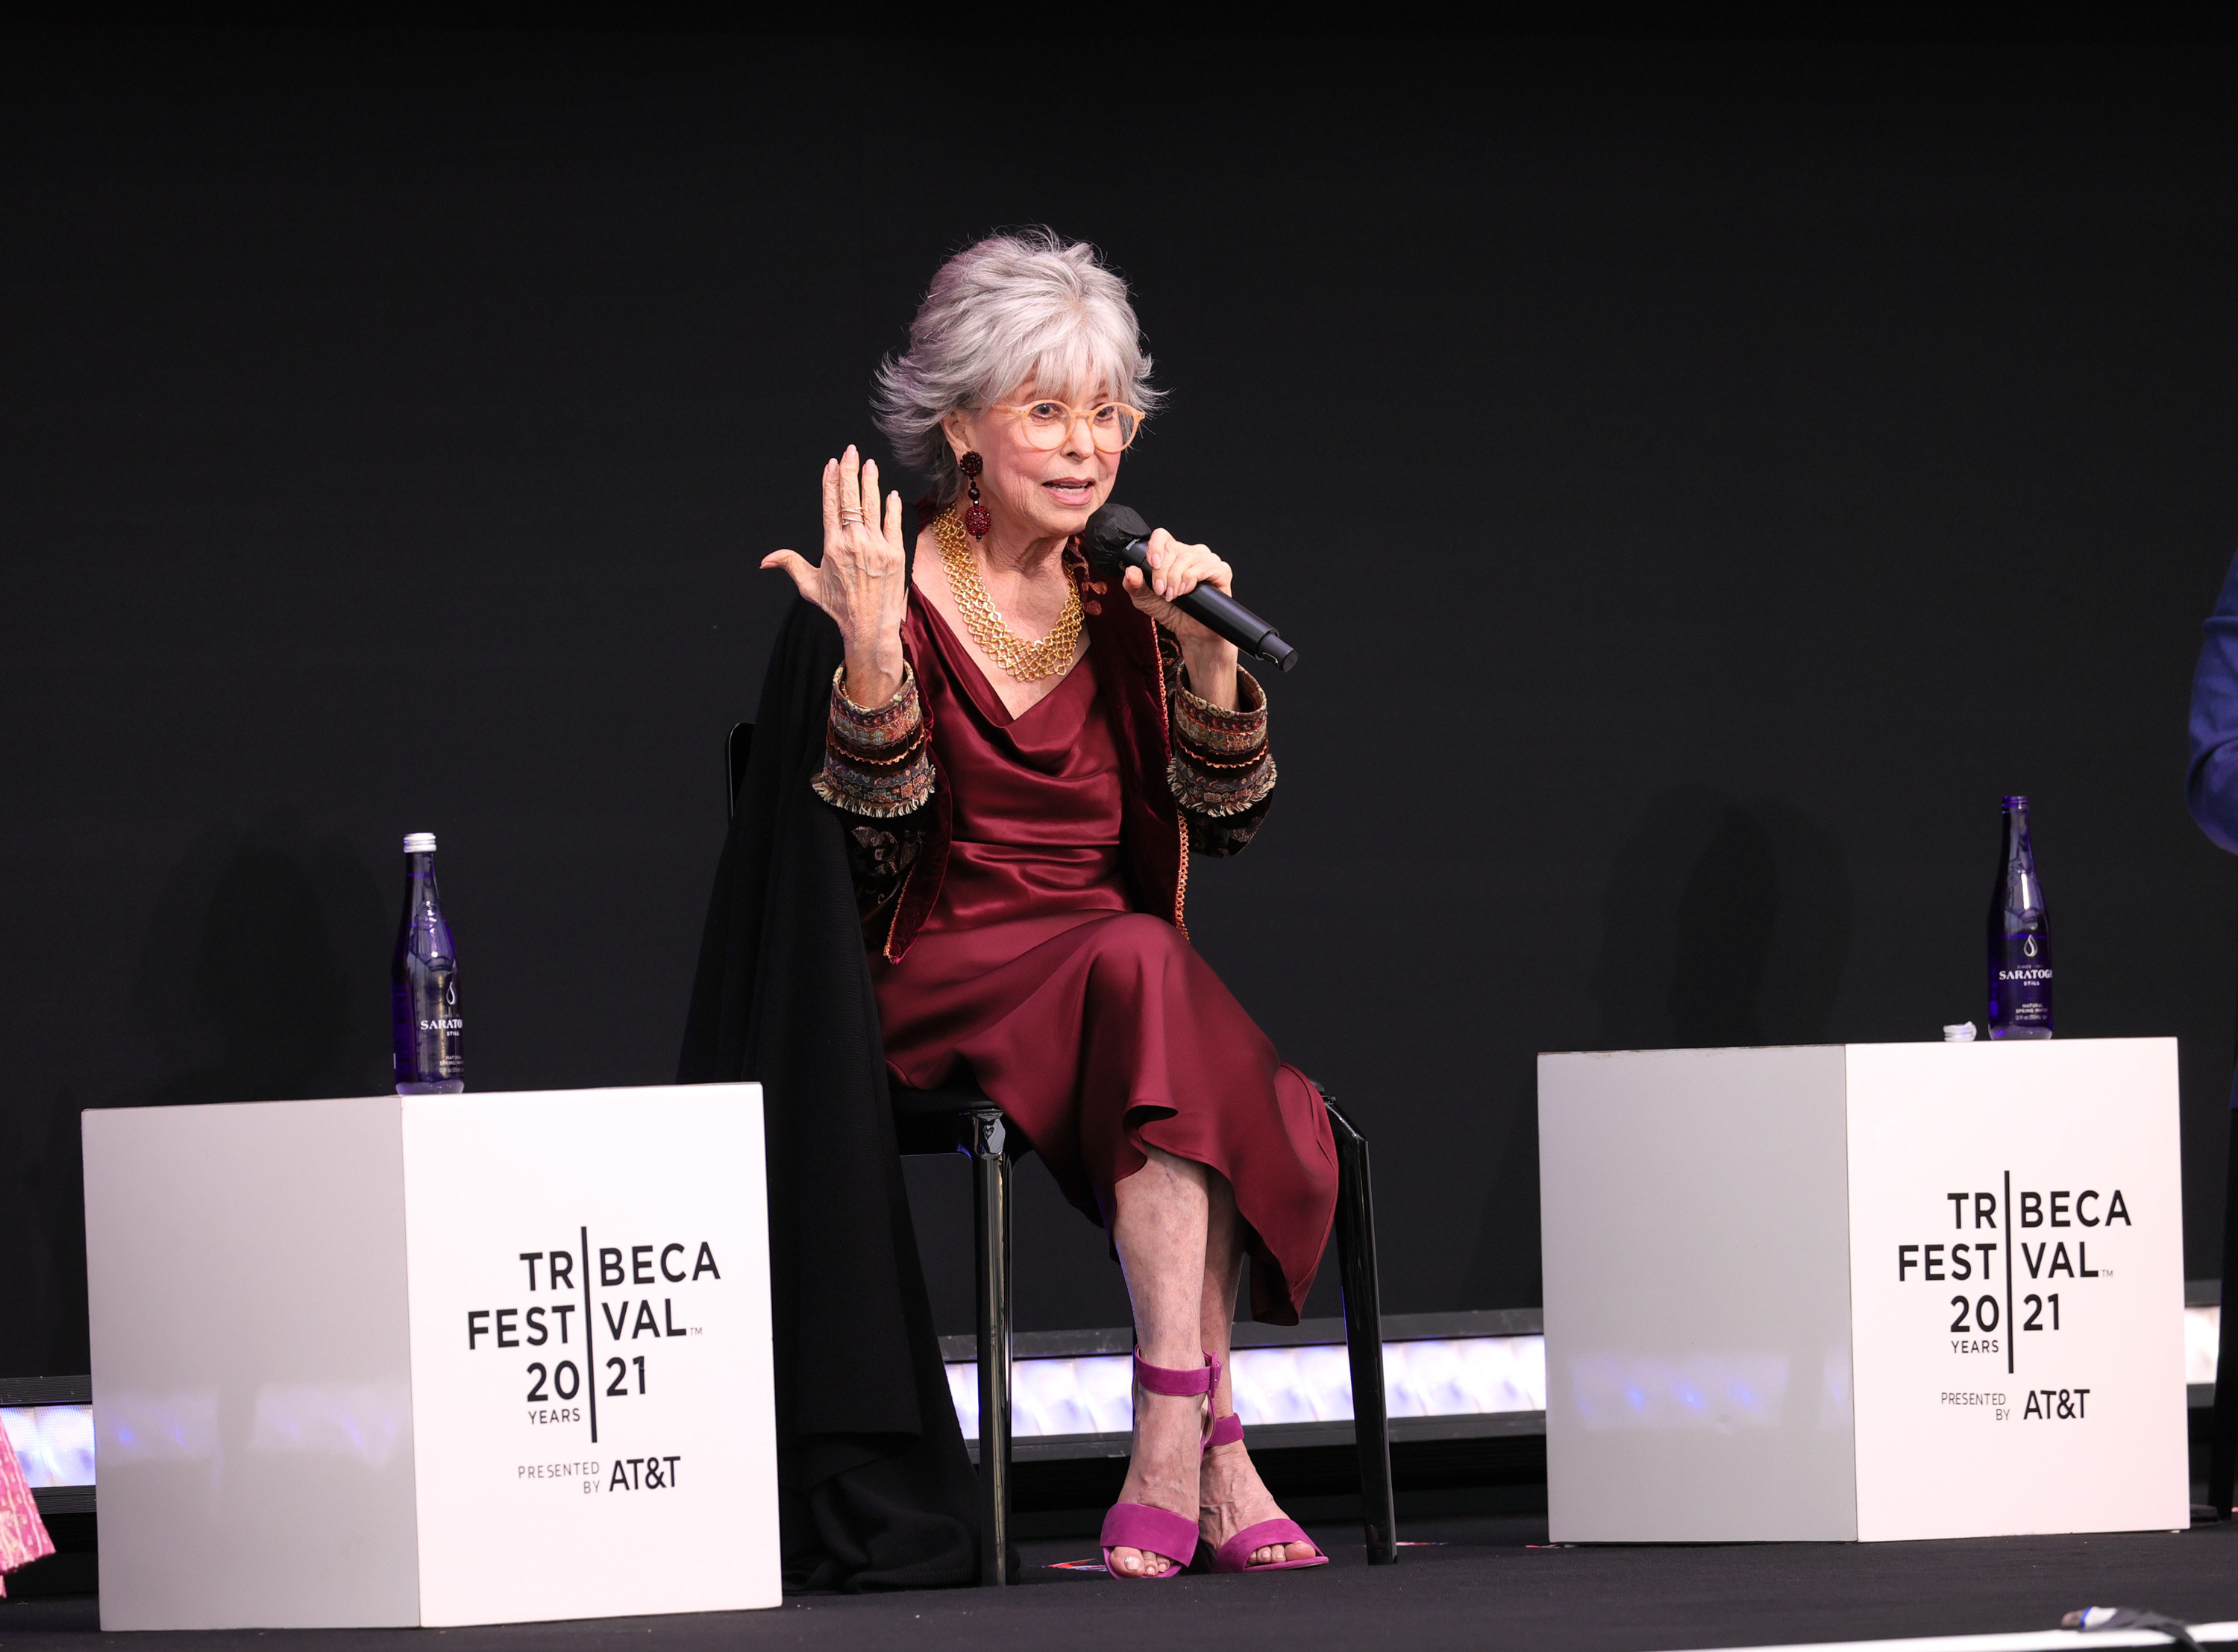 """Rita Moreno speaks during the 2021 Tribeca Festival Premiere of """"Rita Moreno: Just a Girl Who Decided to Go for It"""" at Pier 76 on June 12, 2021 in New York City"""